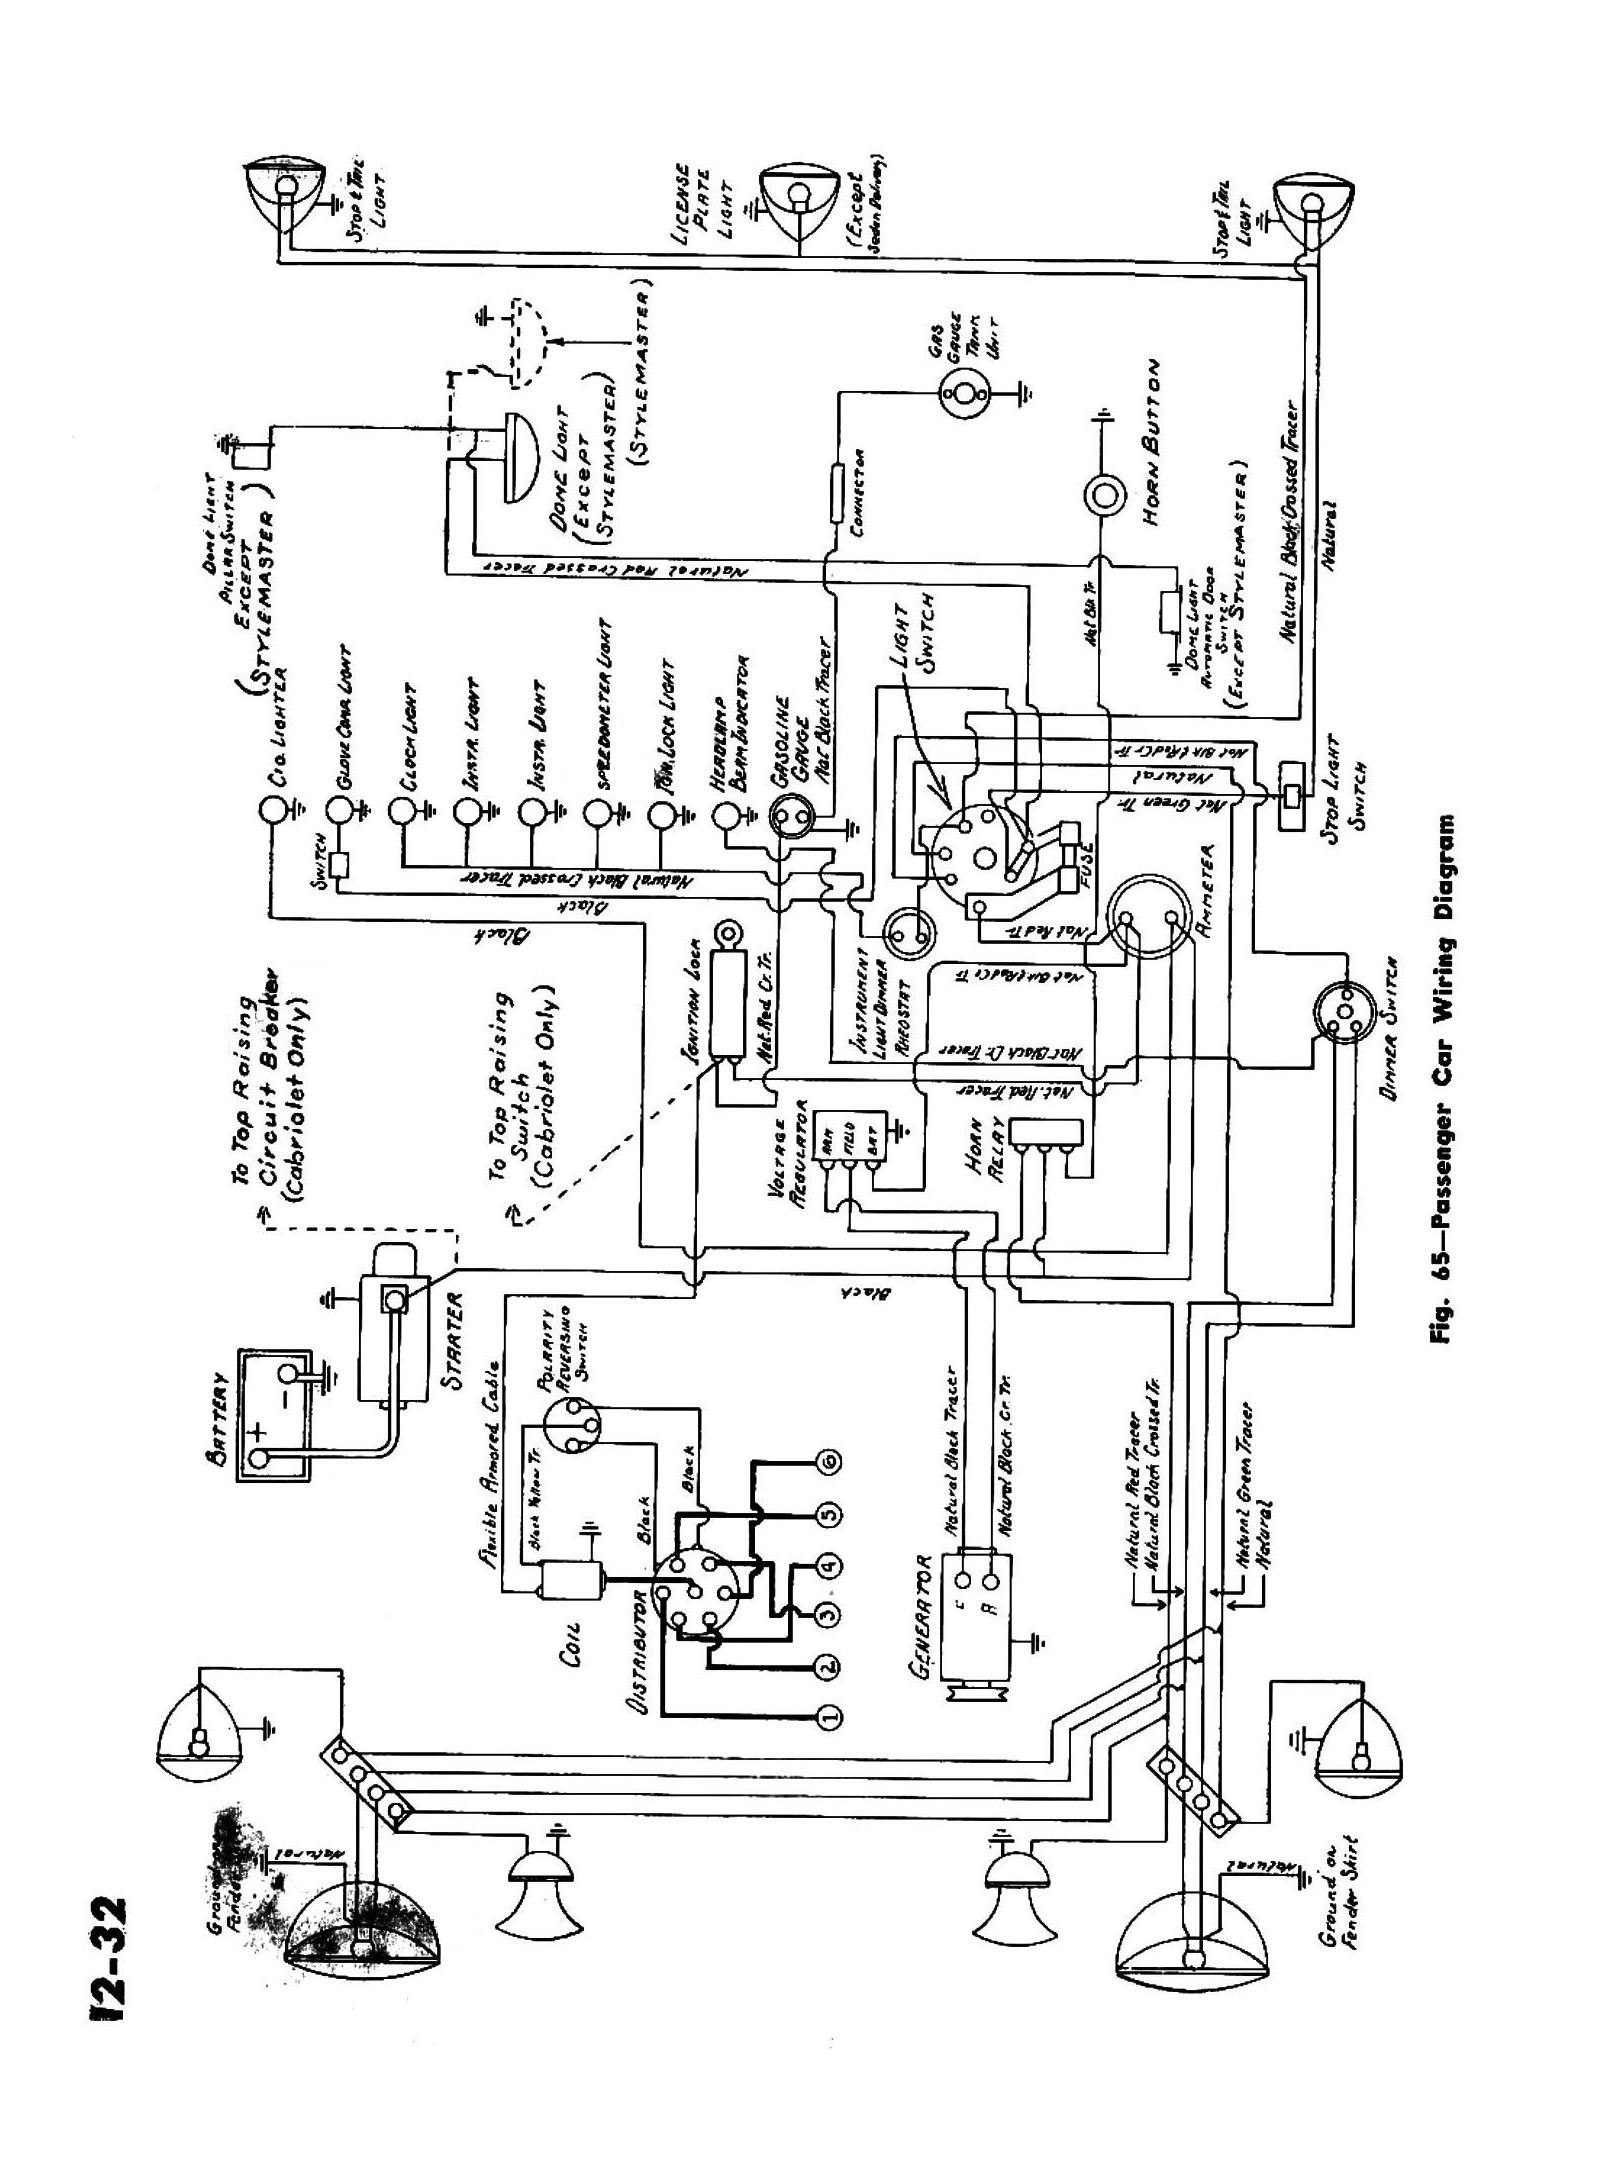 45car chevy wiring diagrams find wiring diagram for 87 ford f 150 at gsmportal.co